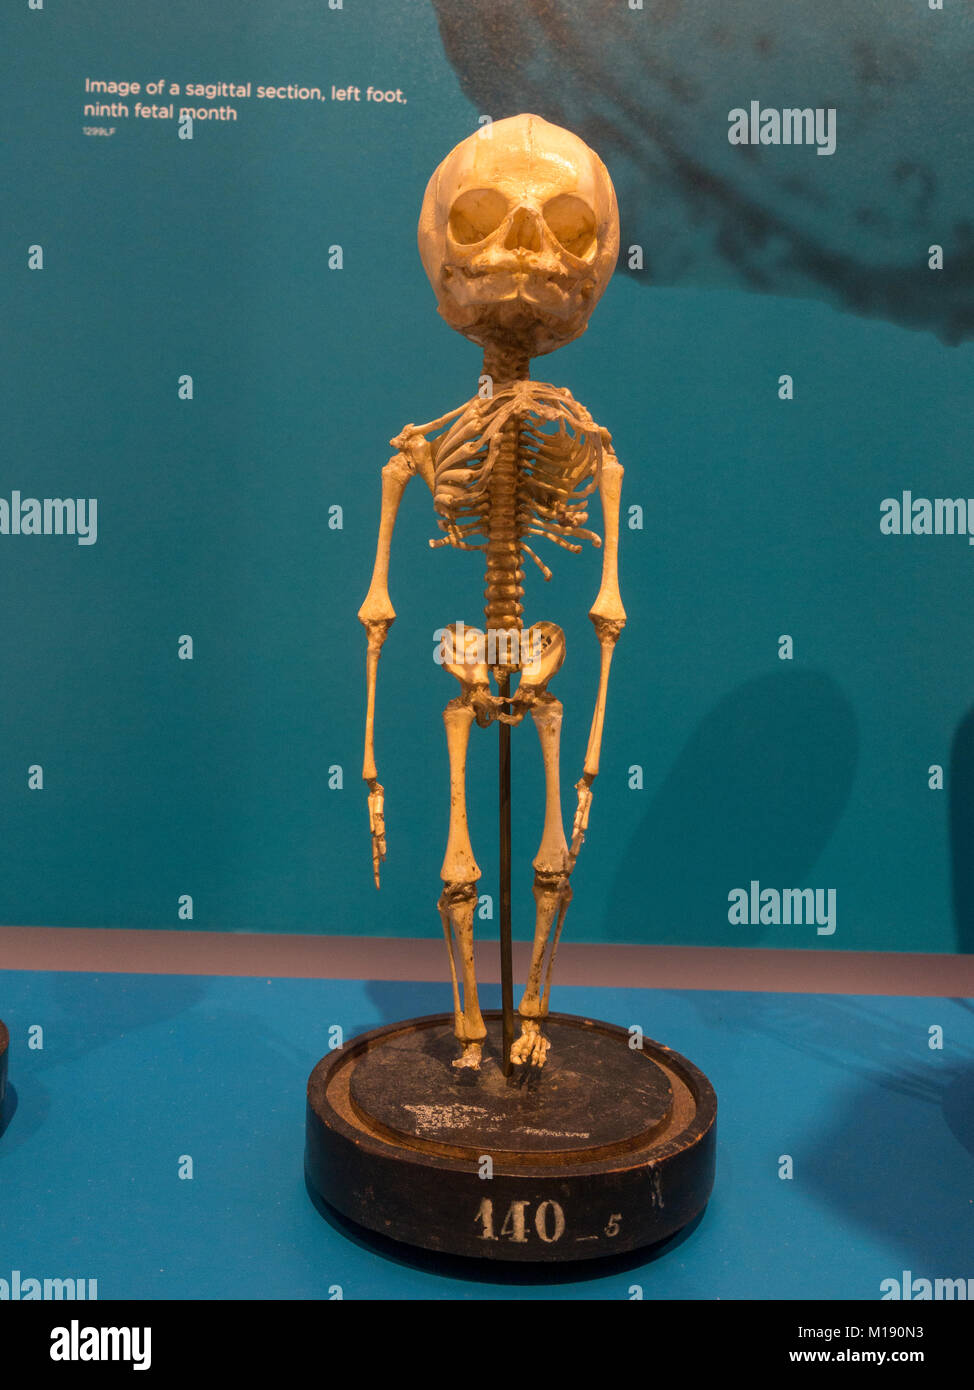 Human child fetal skeleton at 5 months on display in the National Museum of Health and Medicine, Silver Spring, - Stock Image